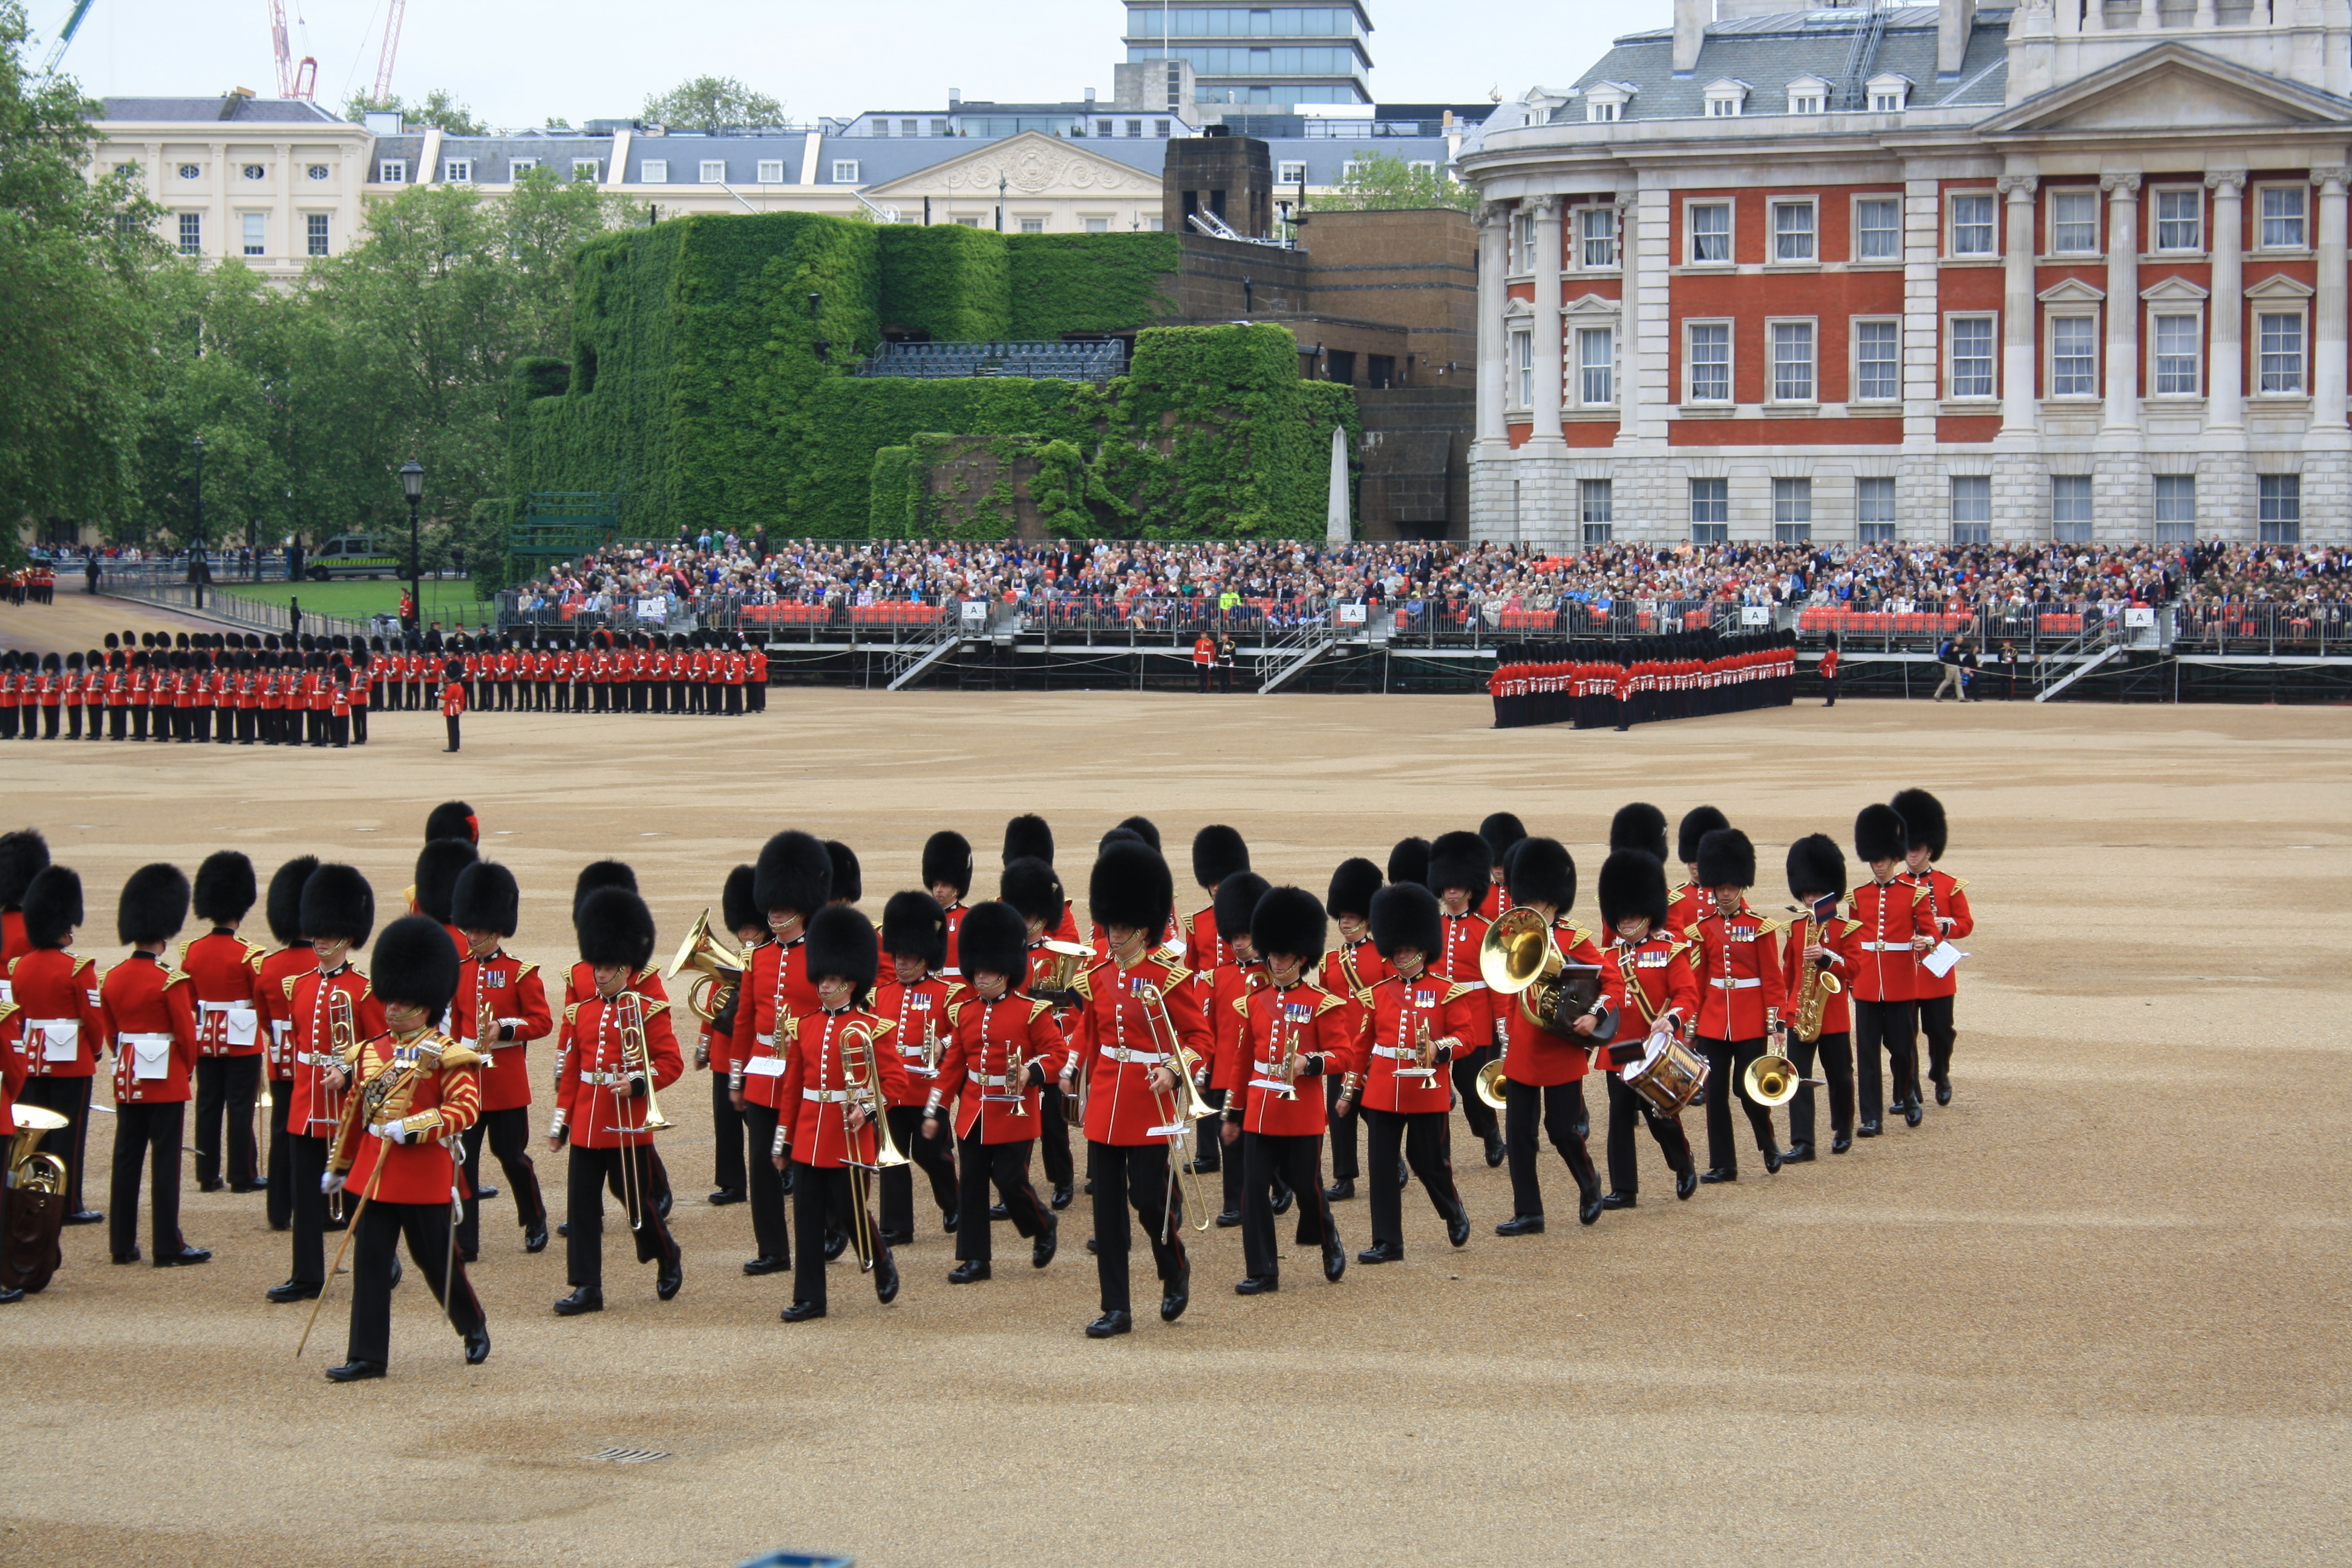 File:Rehearsal of the Queen's Birthday parade, 3 June 2012 ...